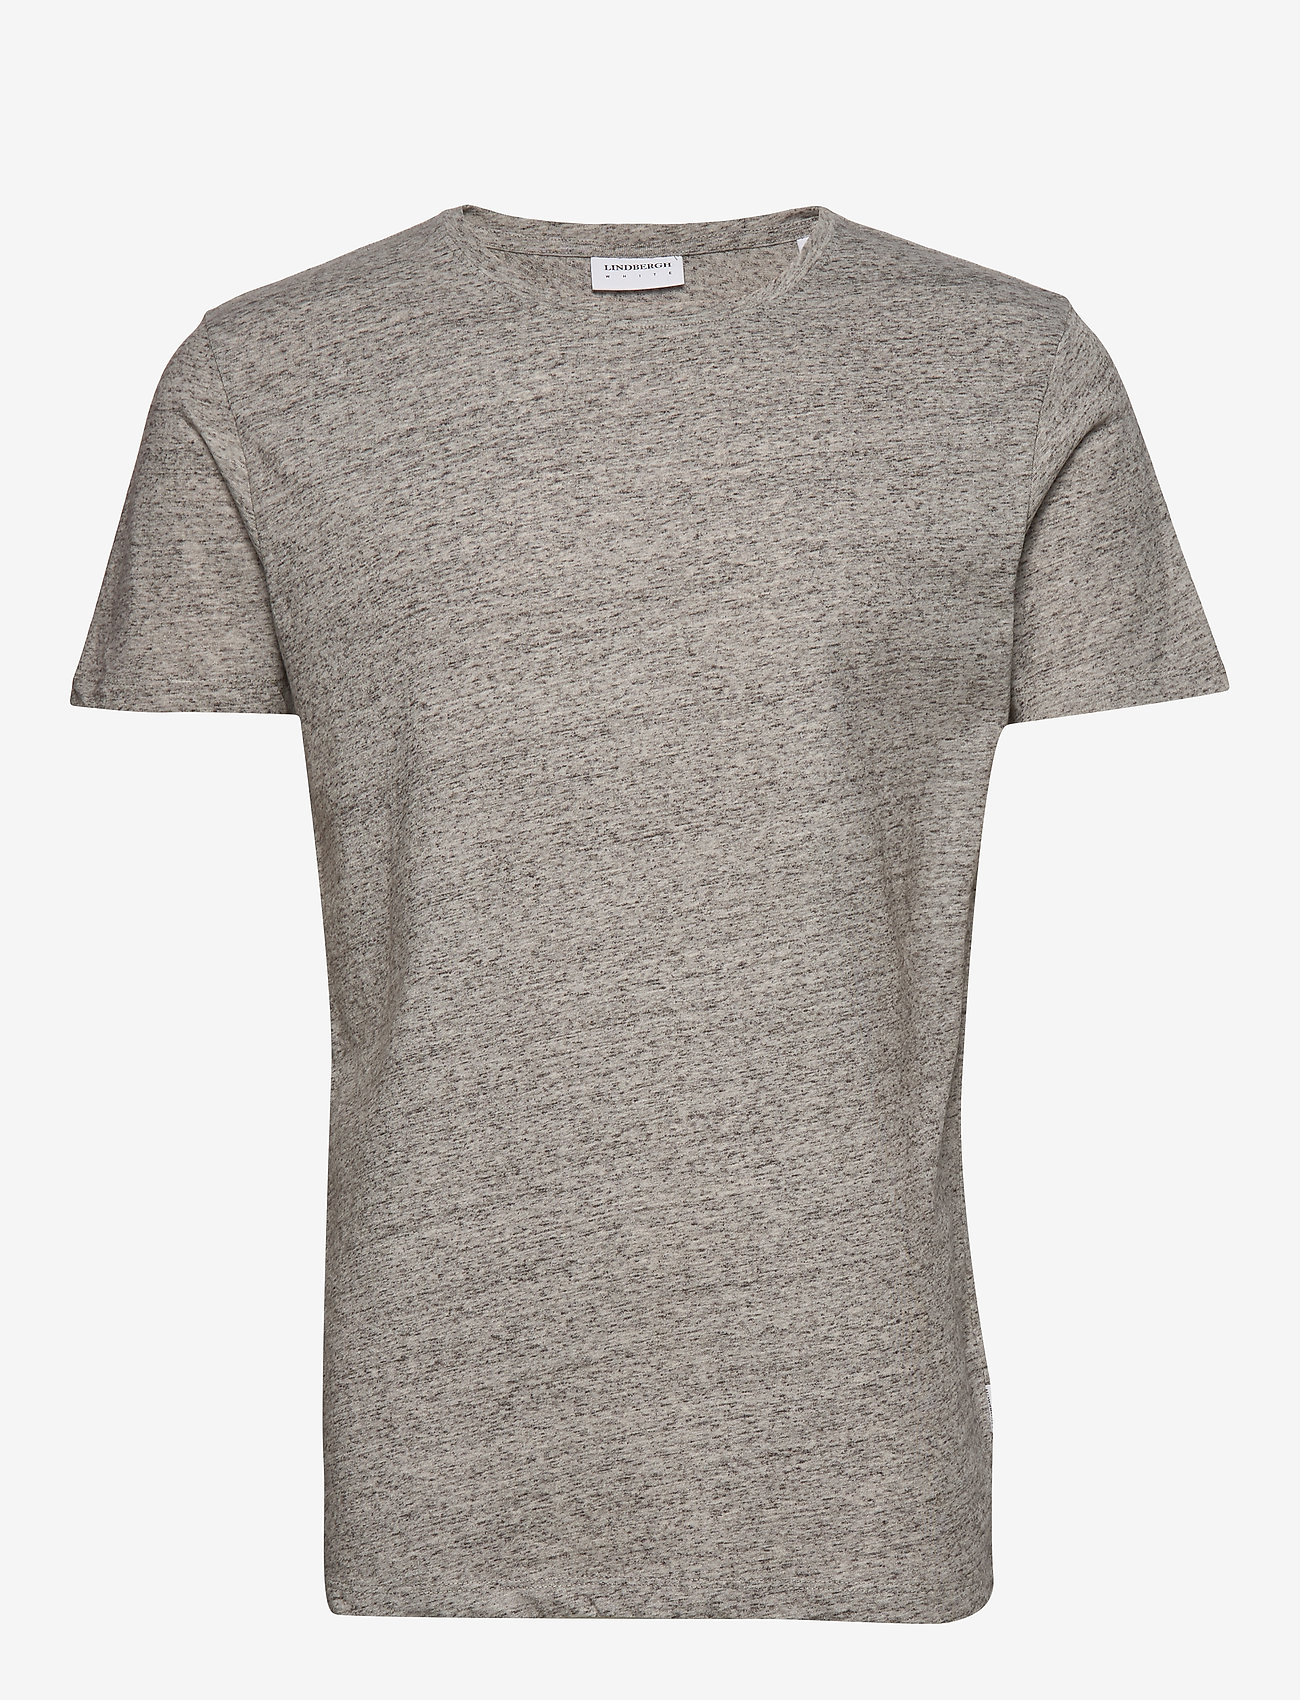 Lindbergh - Neps structure tee S/S - lyhythihaiset - grey - 0